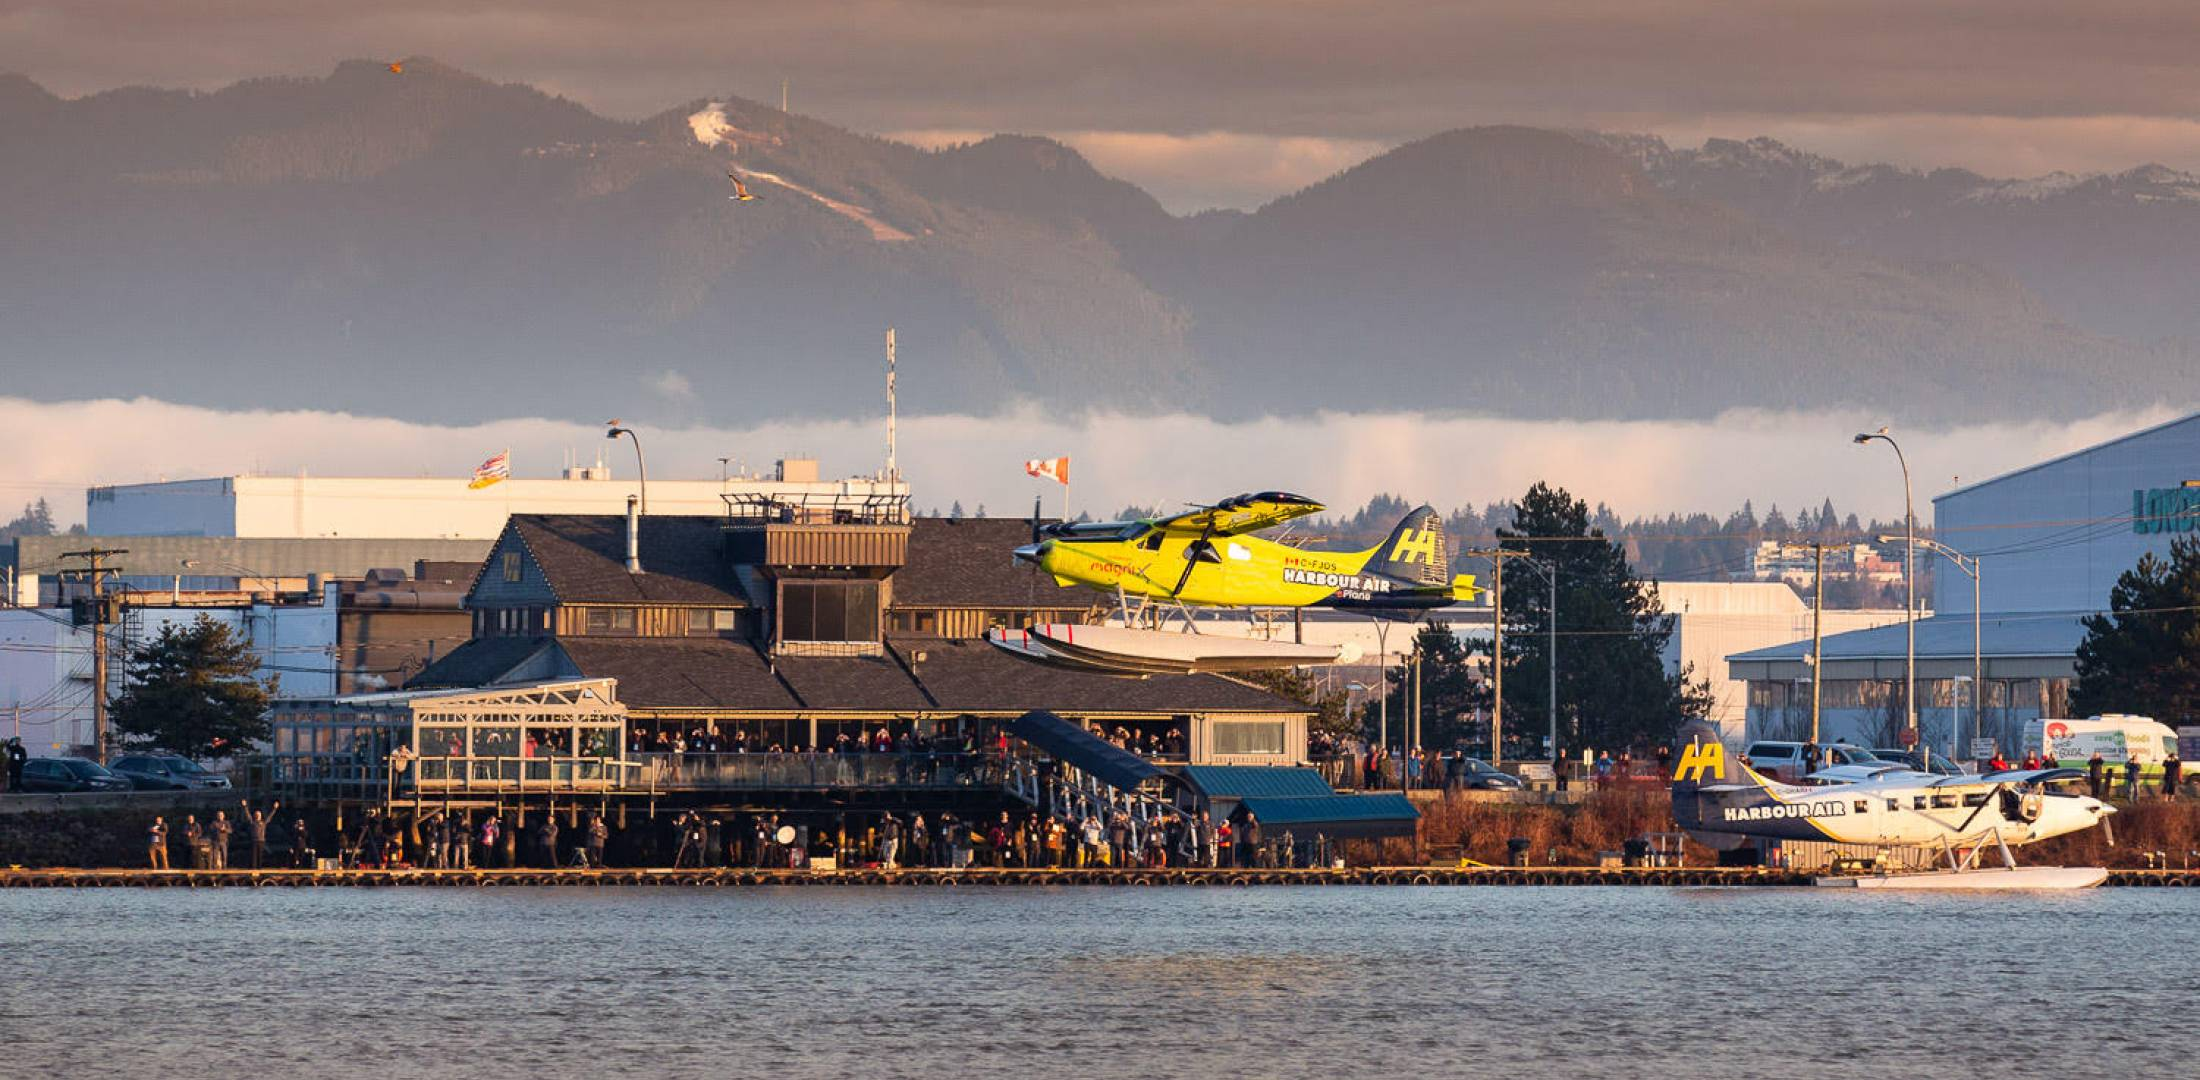 Harbour Air electric DHC-2 Beaver